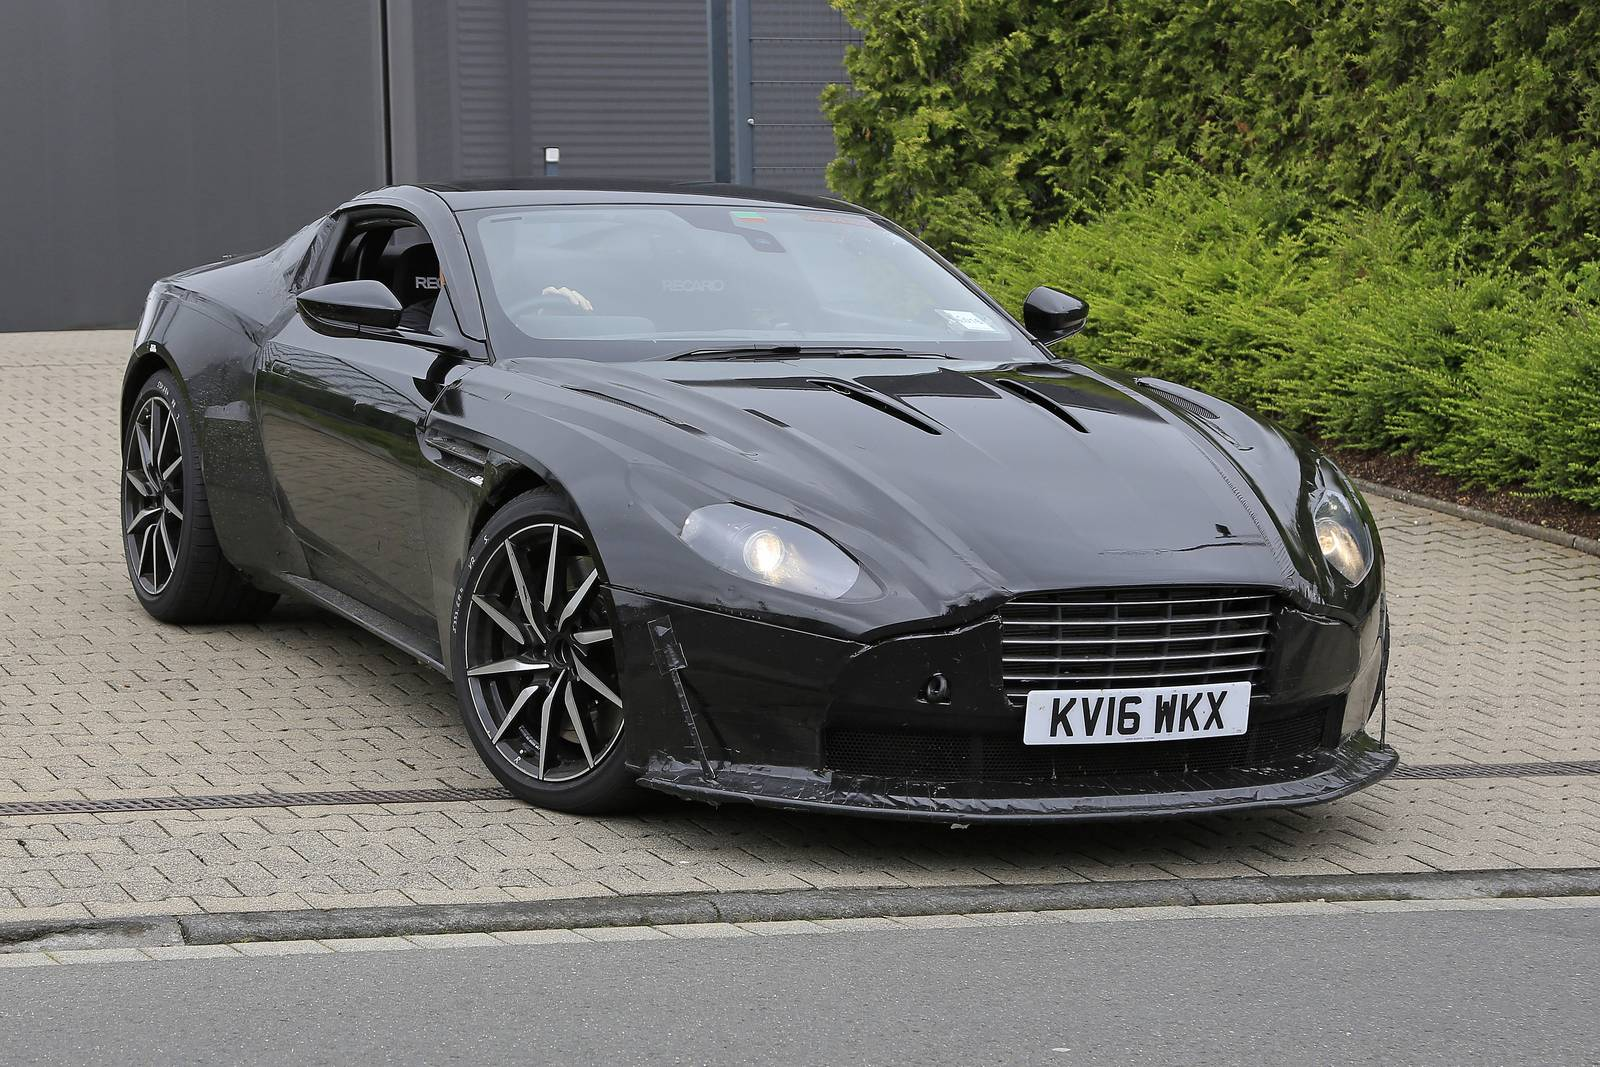 Amg Powered Aston Martin Vantage First Spy Shots on aston martin vanquish interior